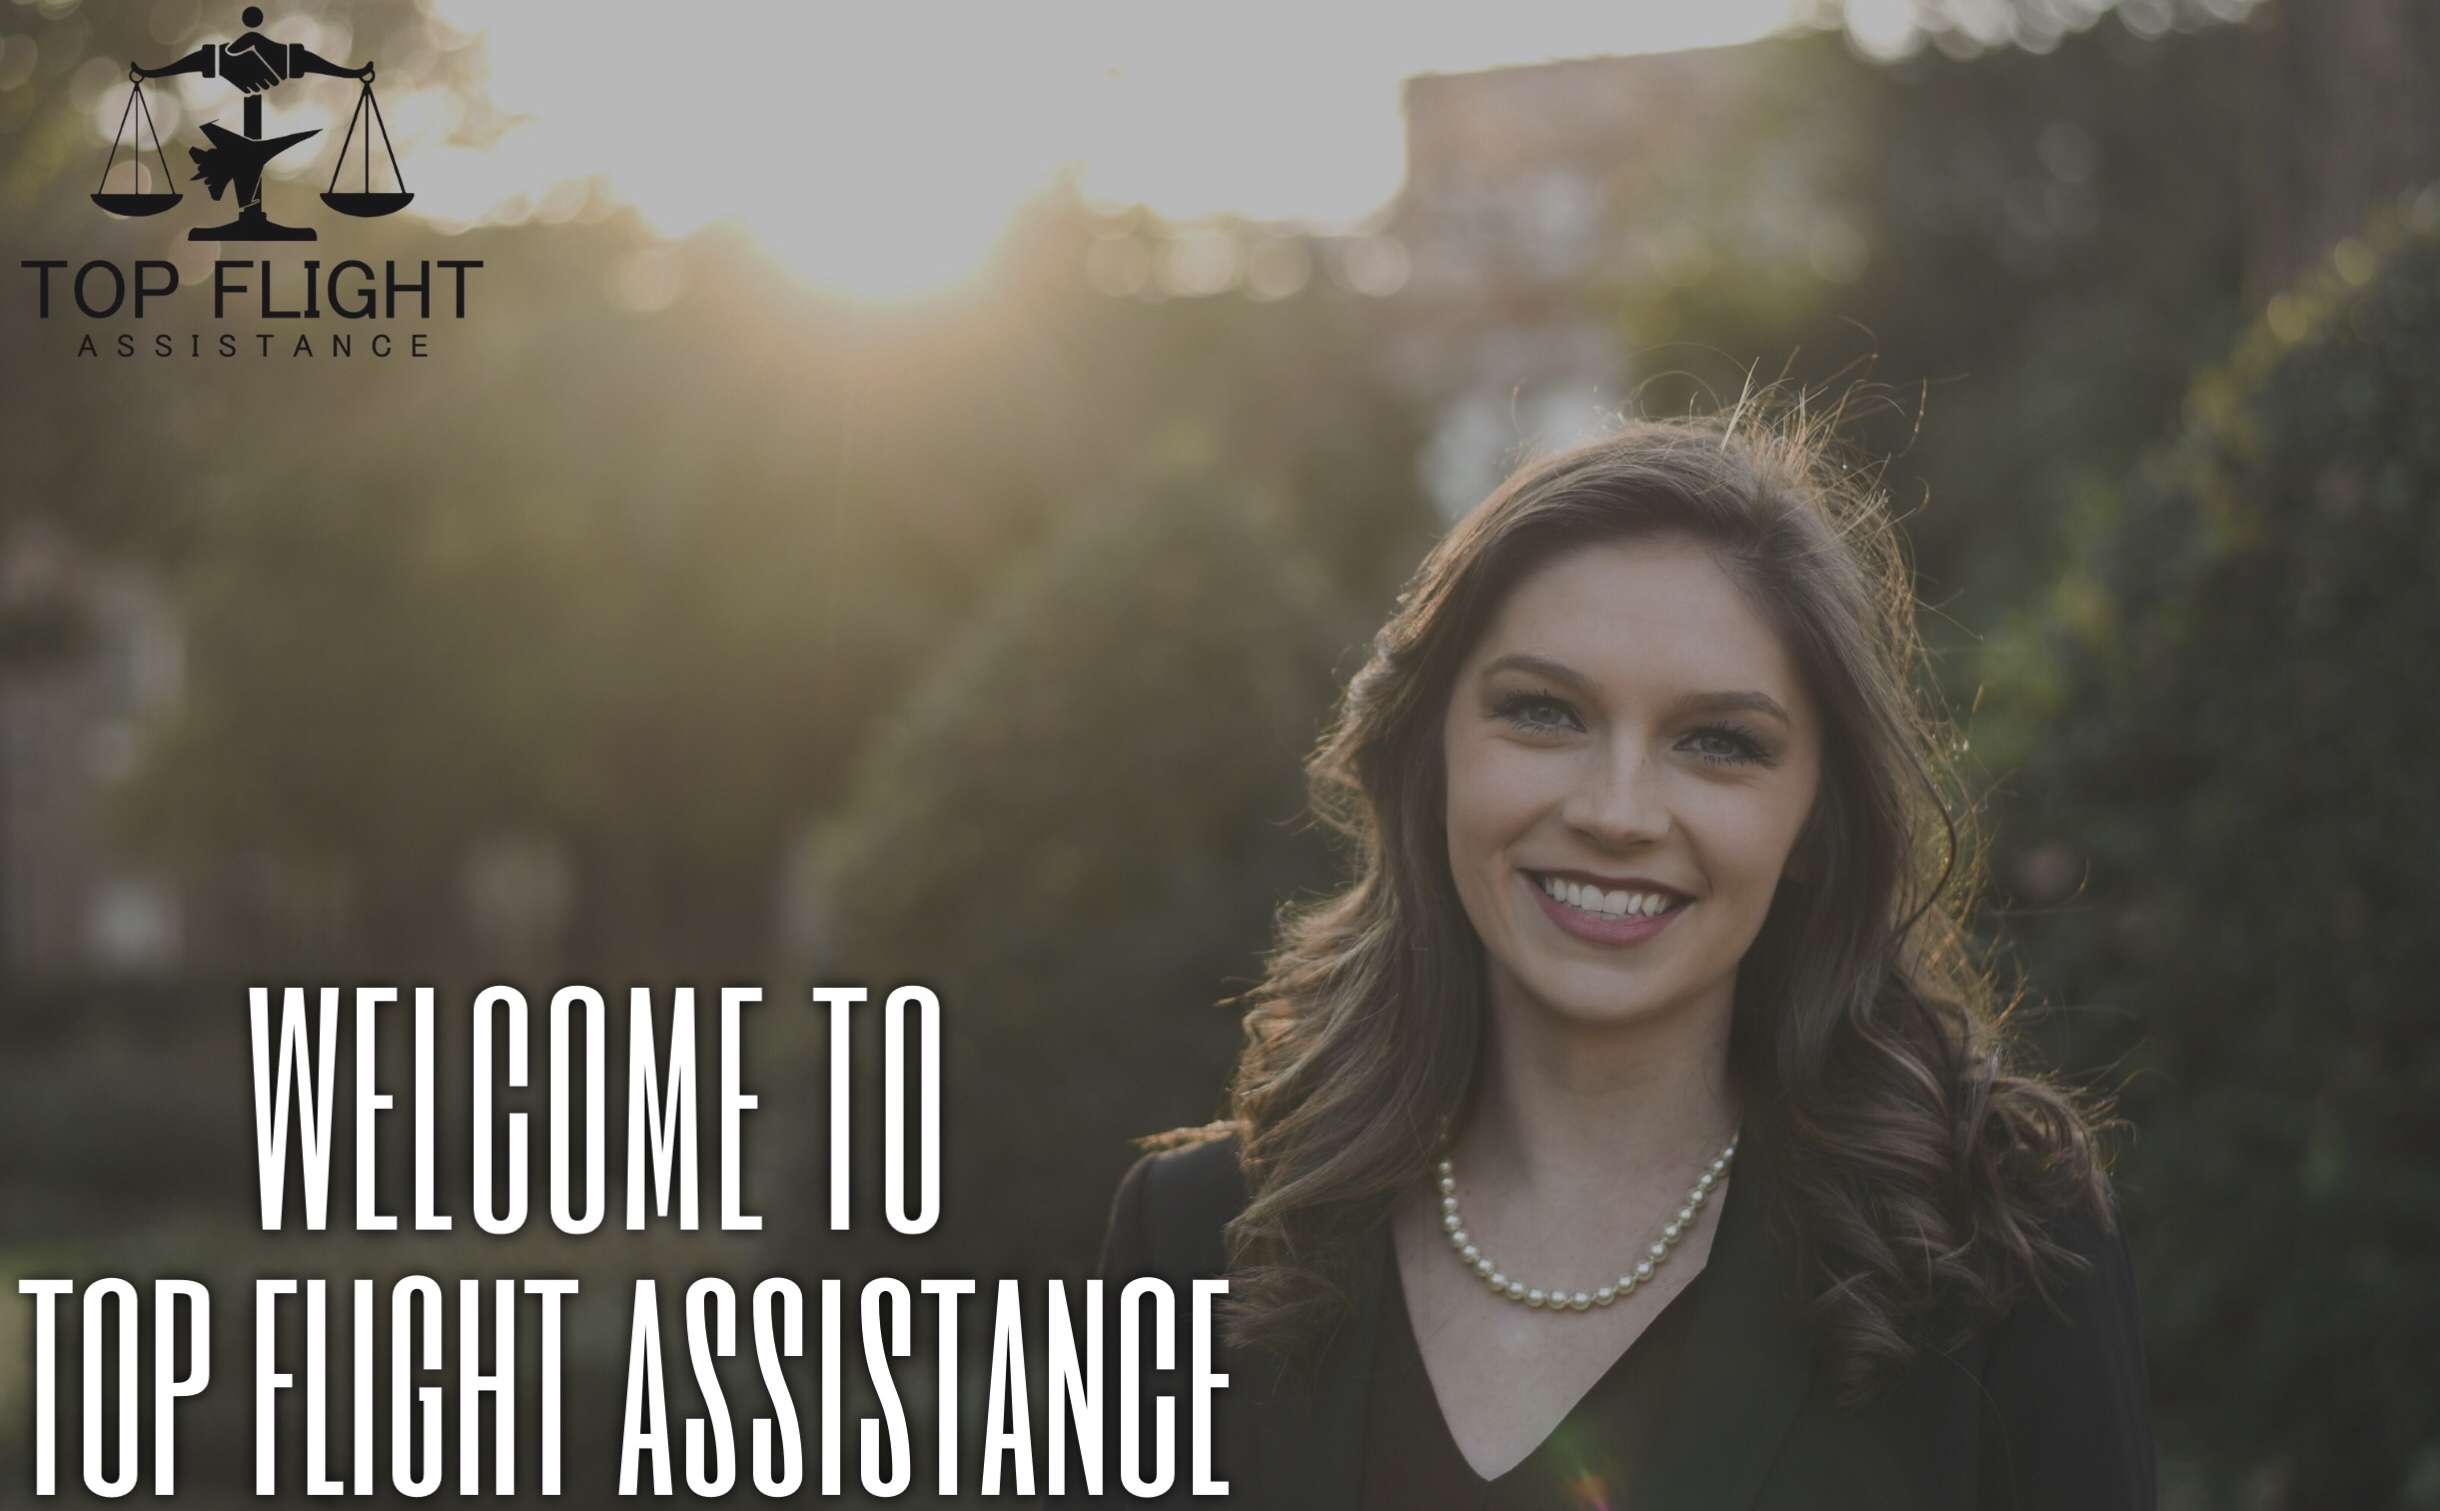 Welcome To Top Flight Assistance (Day 1) - HELLO! We appreciate you choosing TFA to assist you in restoring your credit and improving your FICO scores! Our communication, integrity, and results will be of the highest level. Here at TFA our client experience and satisfaction is top priority, and this requires us to work together.  Just know, we are on your side. Throughout the process we will need your cooperation, compliance and patience as this is a full legal process that requires detailed work time on our end. We will be in continued correspondence as we get you into processing and throughout the entire process! Please Be Advised if for any Reason you are Not Satisfied, Need a payment extension or to Cancel your credit repair, as per your Legal Binding Contract you are Required to Contact our Admin Department Directly Prior to any action towards Canceling payments with your bank to prevent any Legal Court Action towards you or your credit. Again, welcome to the TFA family- If you have any questions, please don't hesitate to call us. Please watch this short video to understand the credit repair process more thoroughly!  https://www.youtube.com/watch?v=KWDVIeRQATk